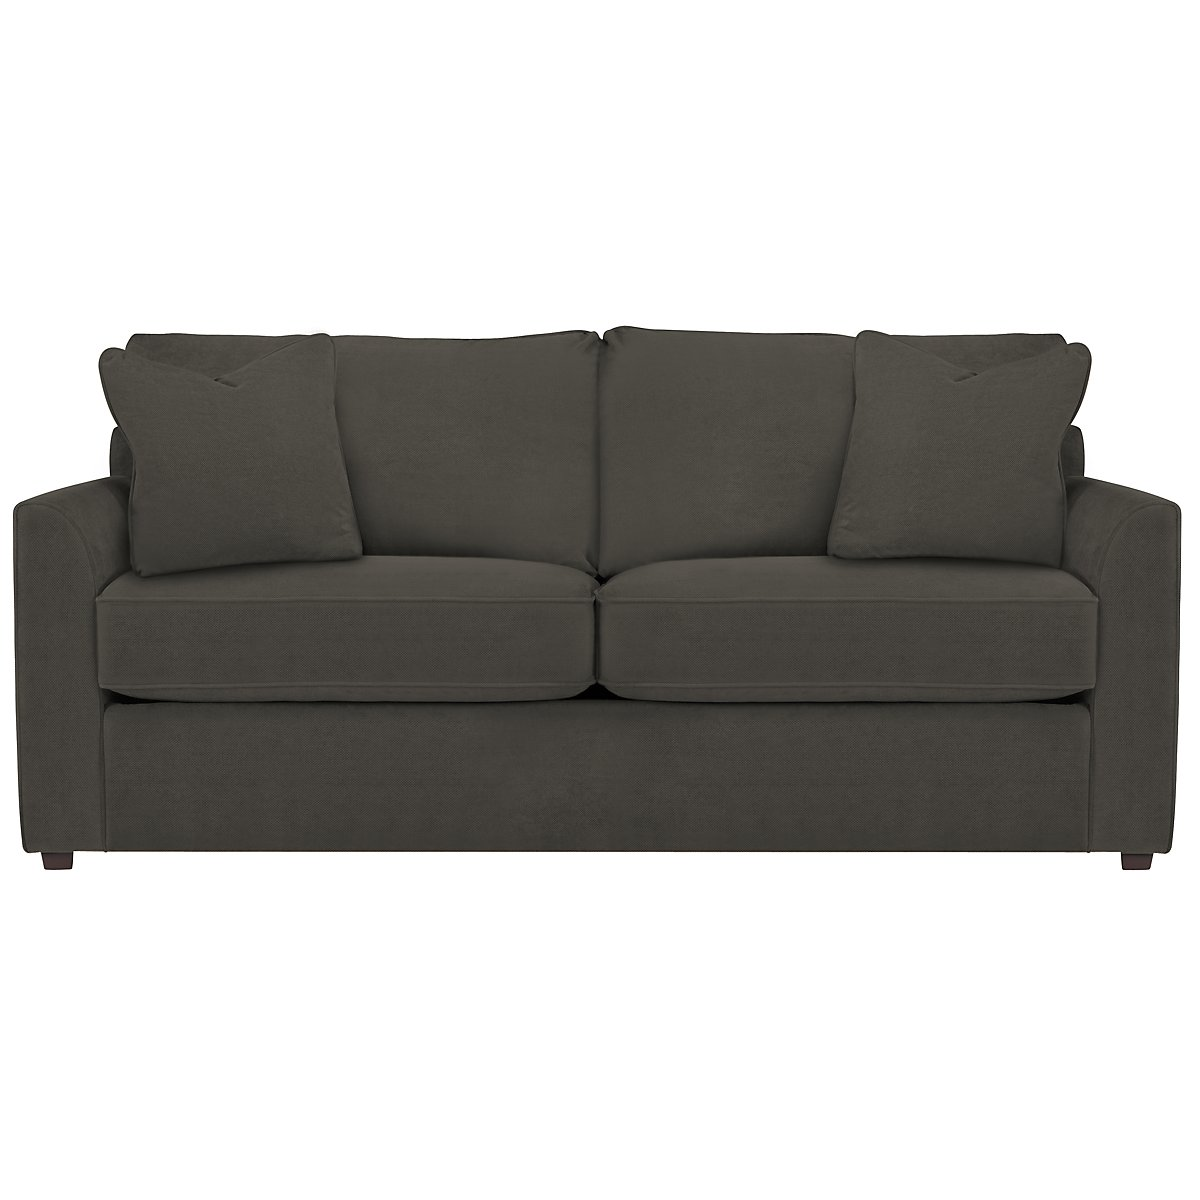 Express3 Dark Gray Microfiber Sofa